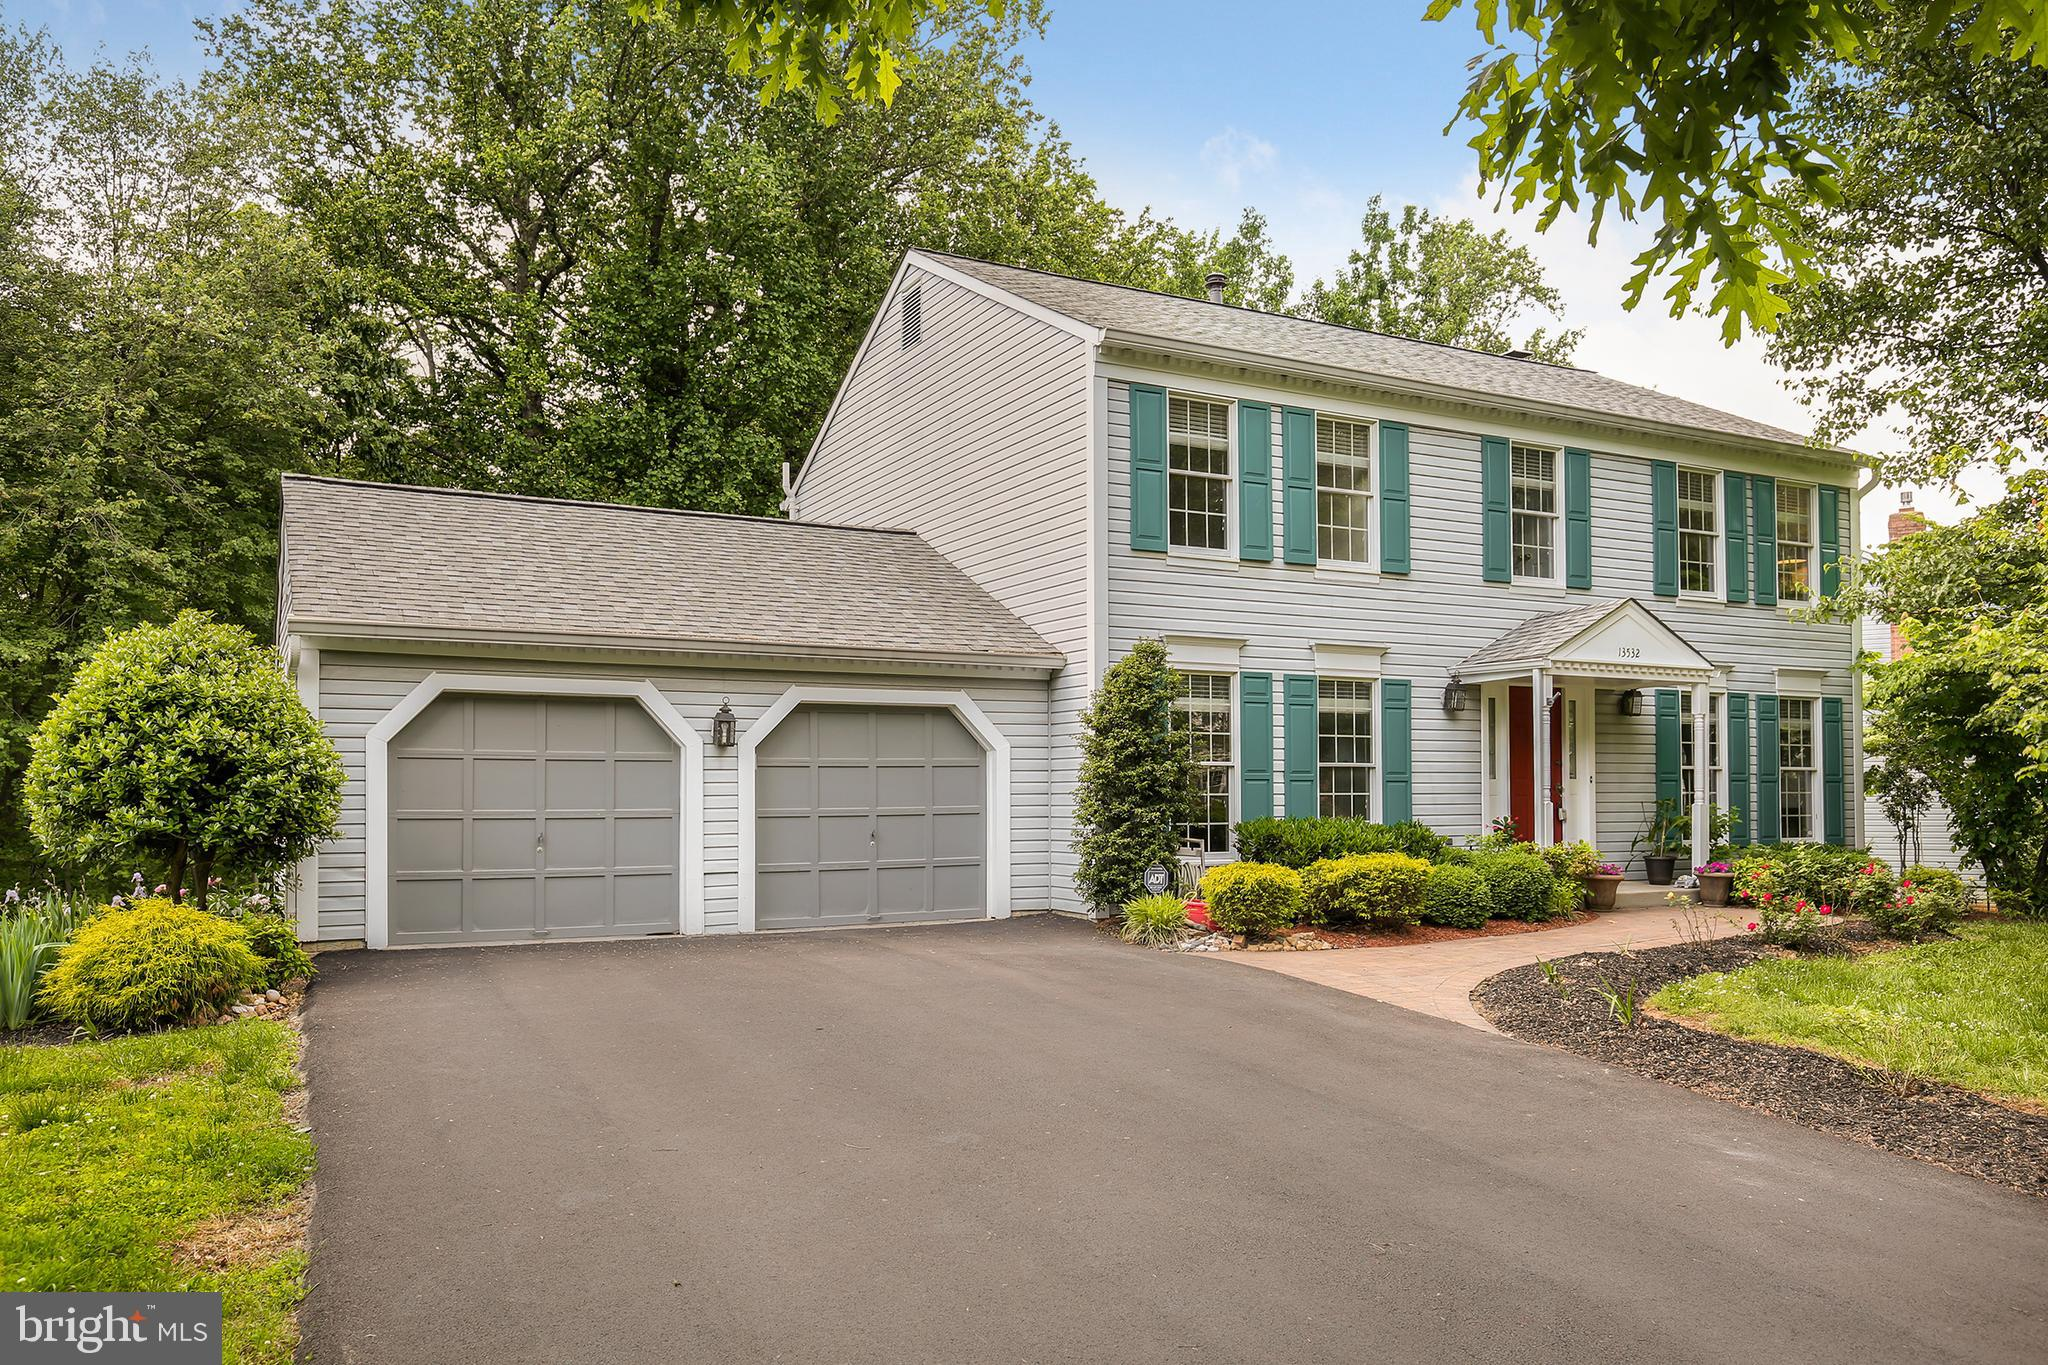 13532 CEDAR CREEK LANE, SILVER SPRING, MD 20904